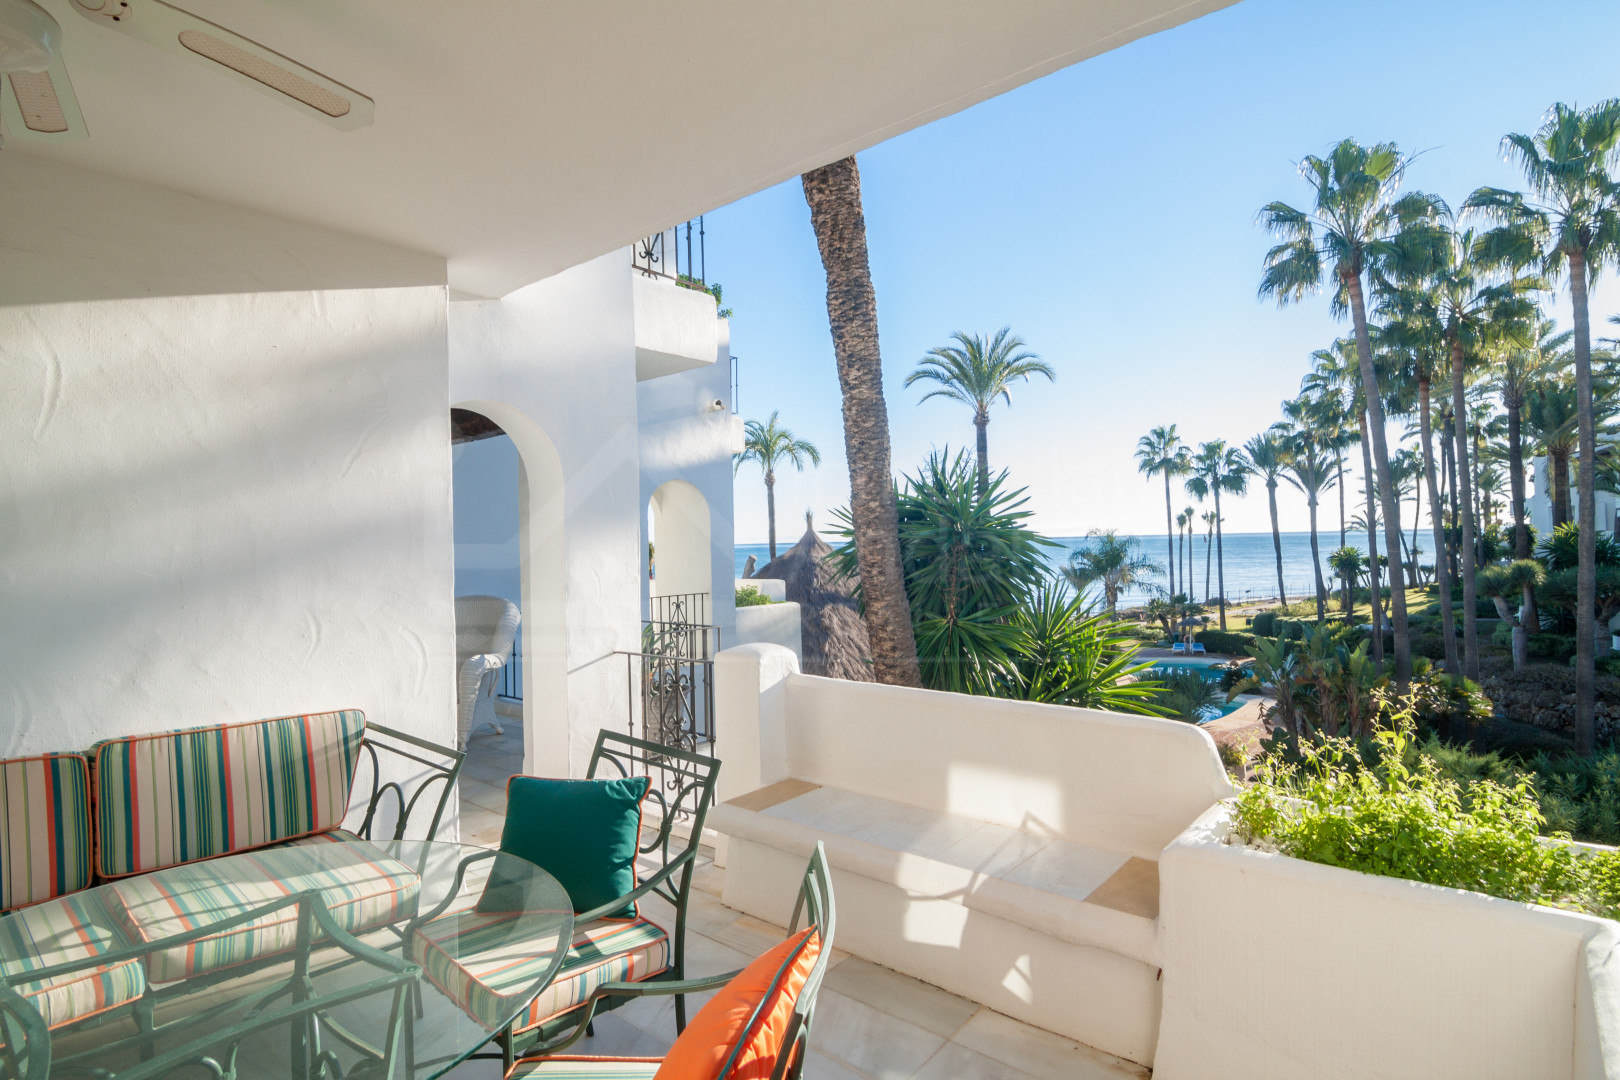 Two-bedroom, first floor frontline beach apartment with amazing views to the sea for sale in Alcazaba Beach, Estepona